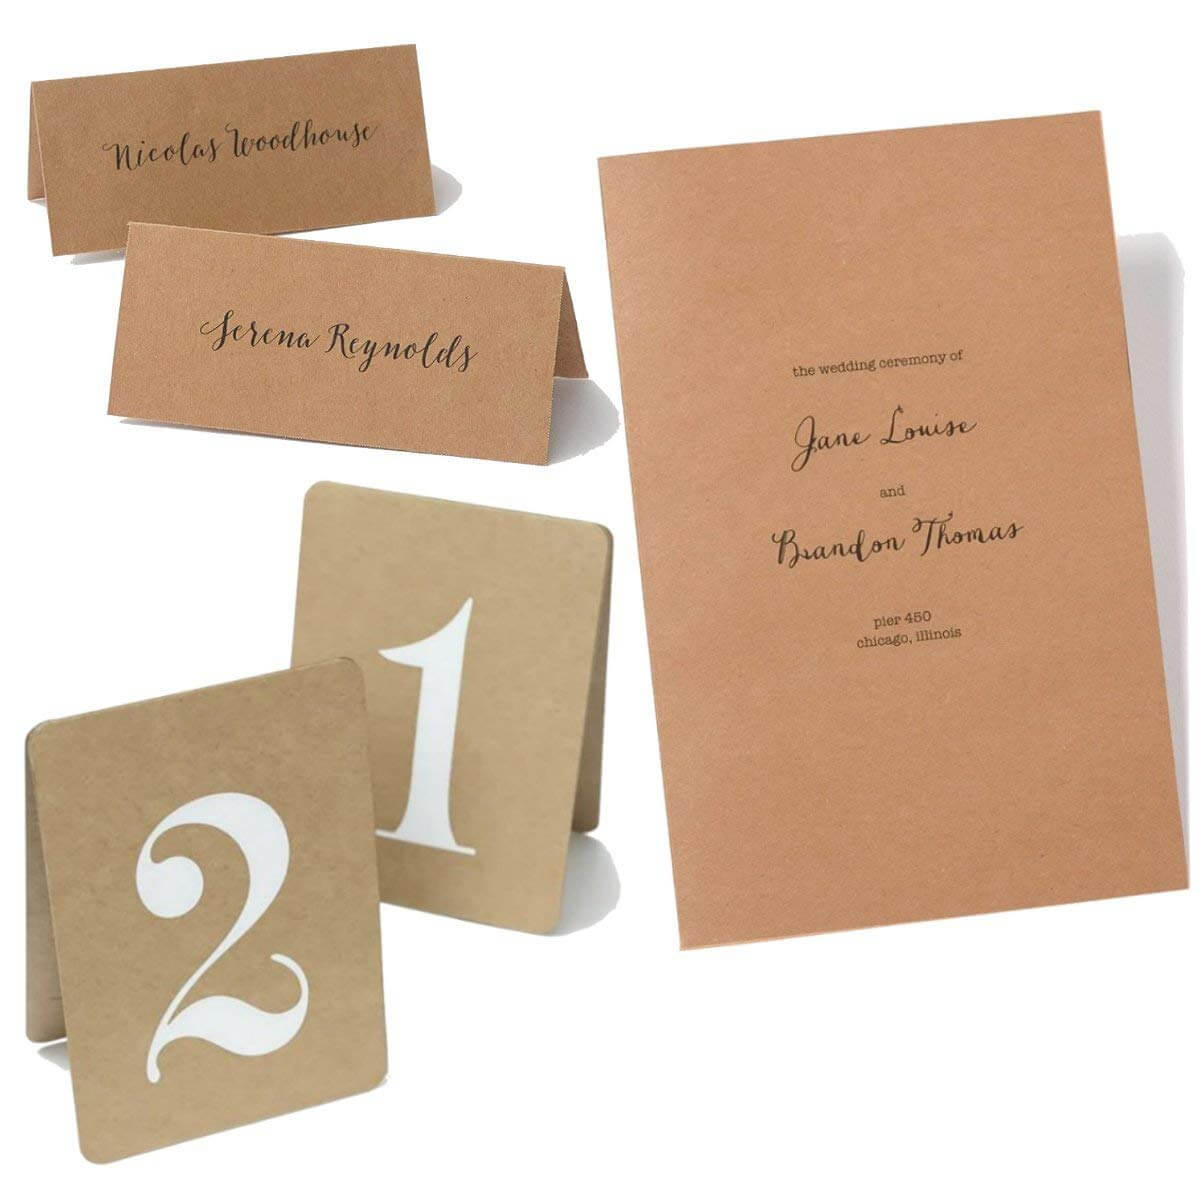 Cheap Table Cards Printable, Find Table Cards Printable Throughout Gartner Studios Place Cards Template